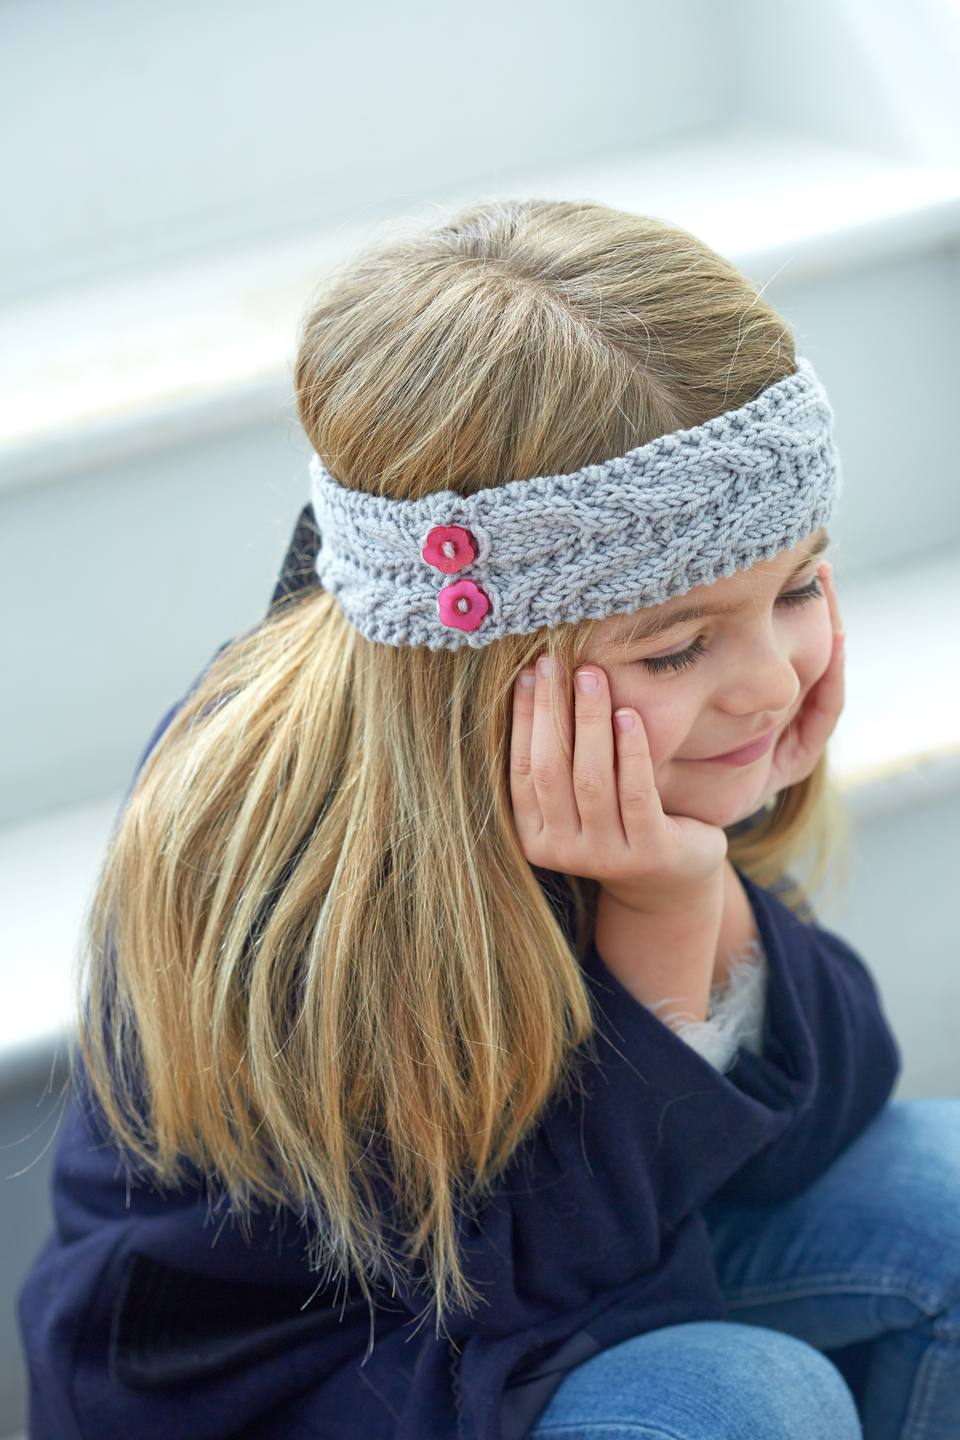 Free Knitting Pattern: Cabled Headband